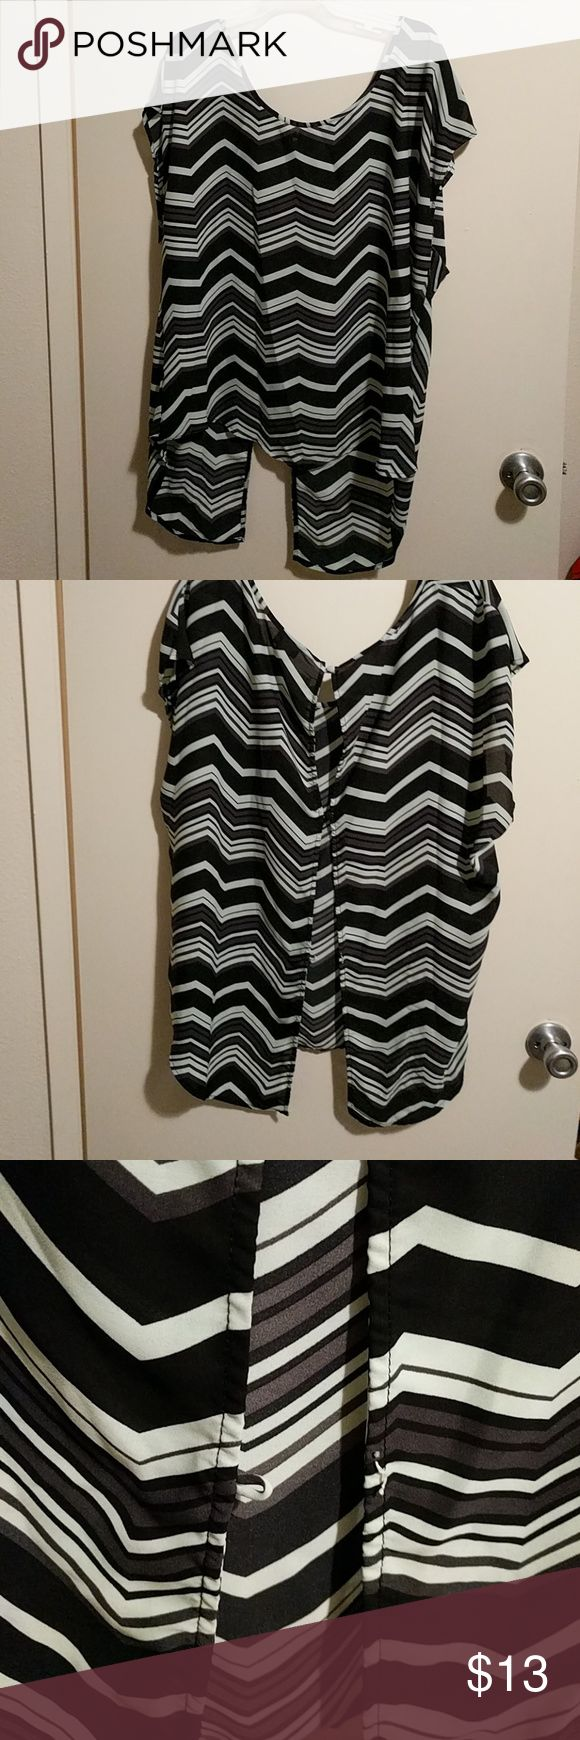 Torrid chevron top Cute and lightweight Chevron print top from Torrid.  Size 2x.  Only defect is one missing button in the back (pictured). torrid Tops